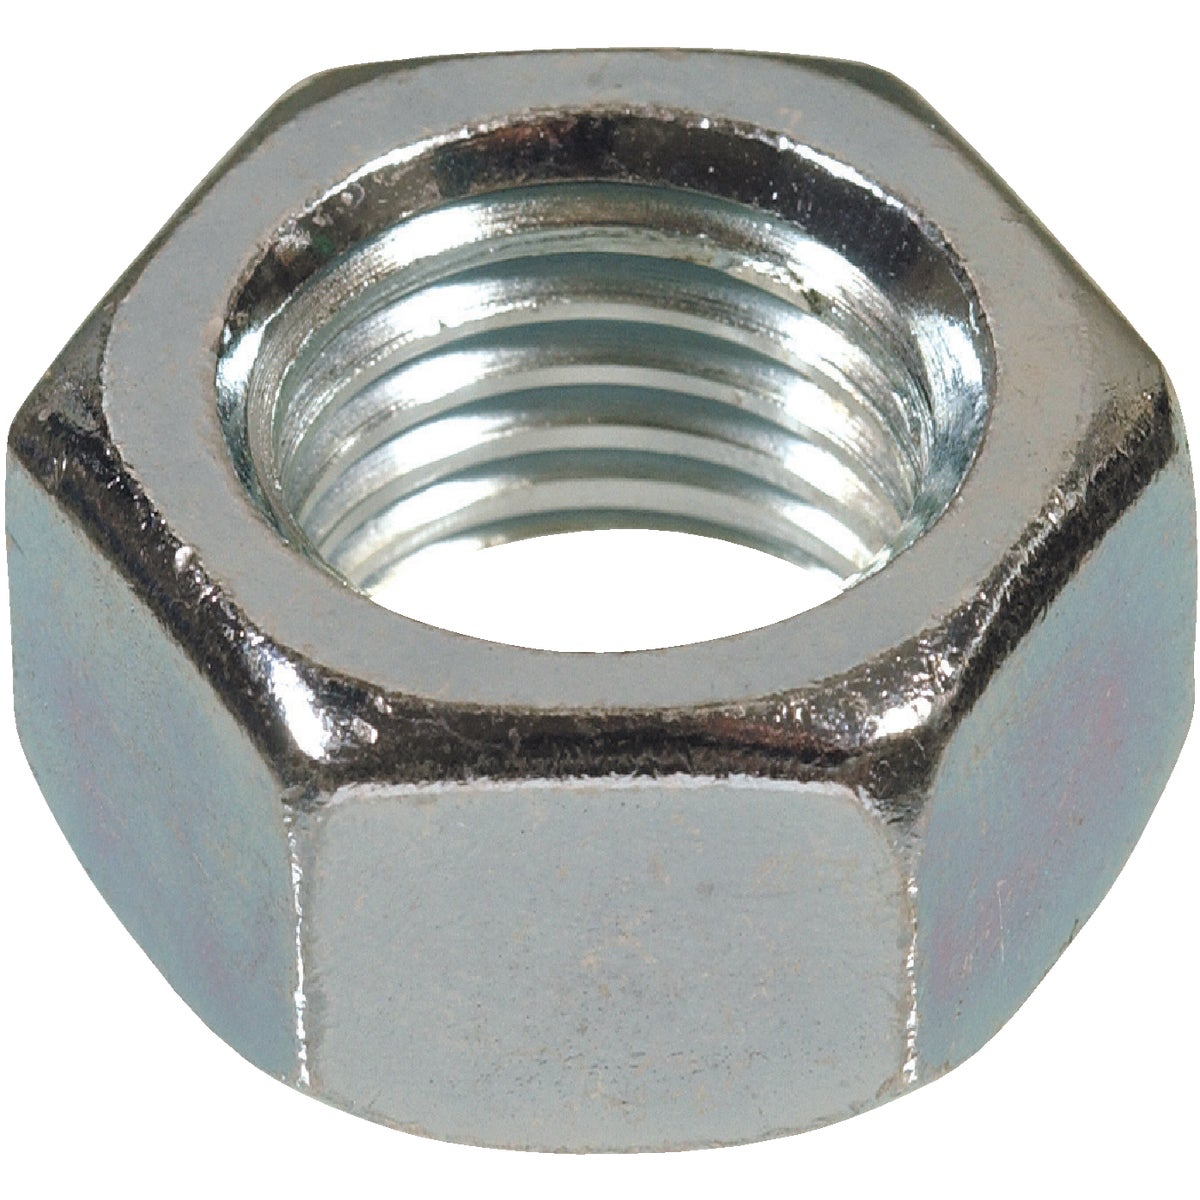 5/16-18 C THREAD HEX NUT - 150006 by Hillman Fastener